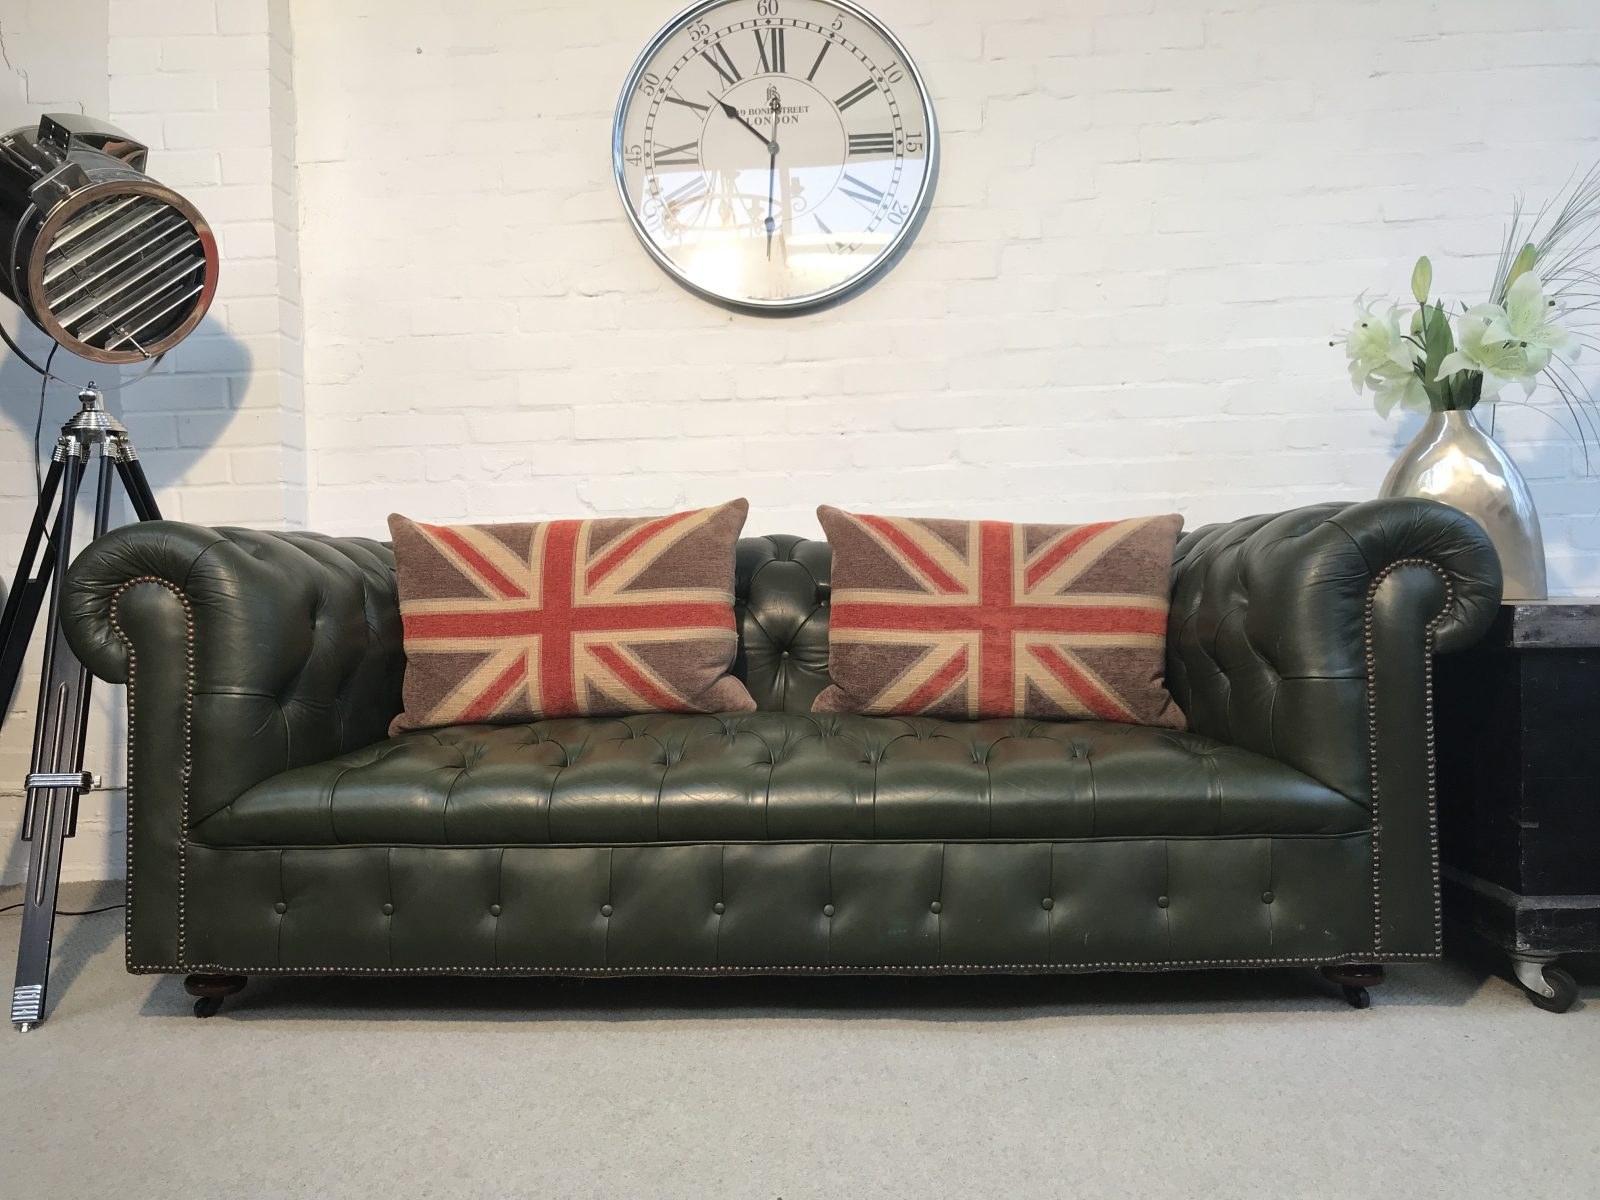 Vintage Fully Buttoned 3 Seater Chesterfield Sofa.